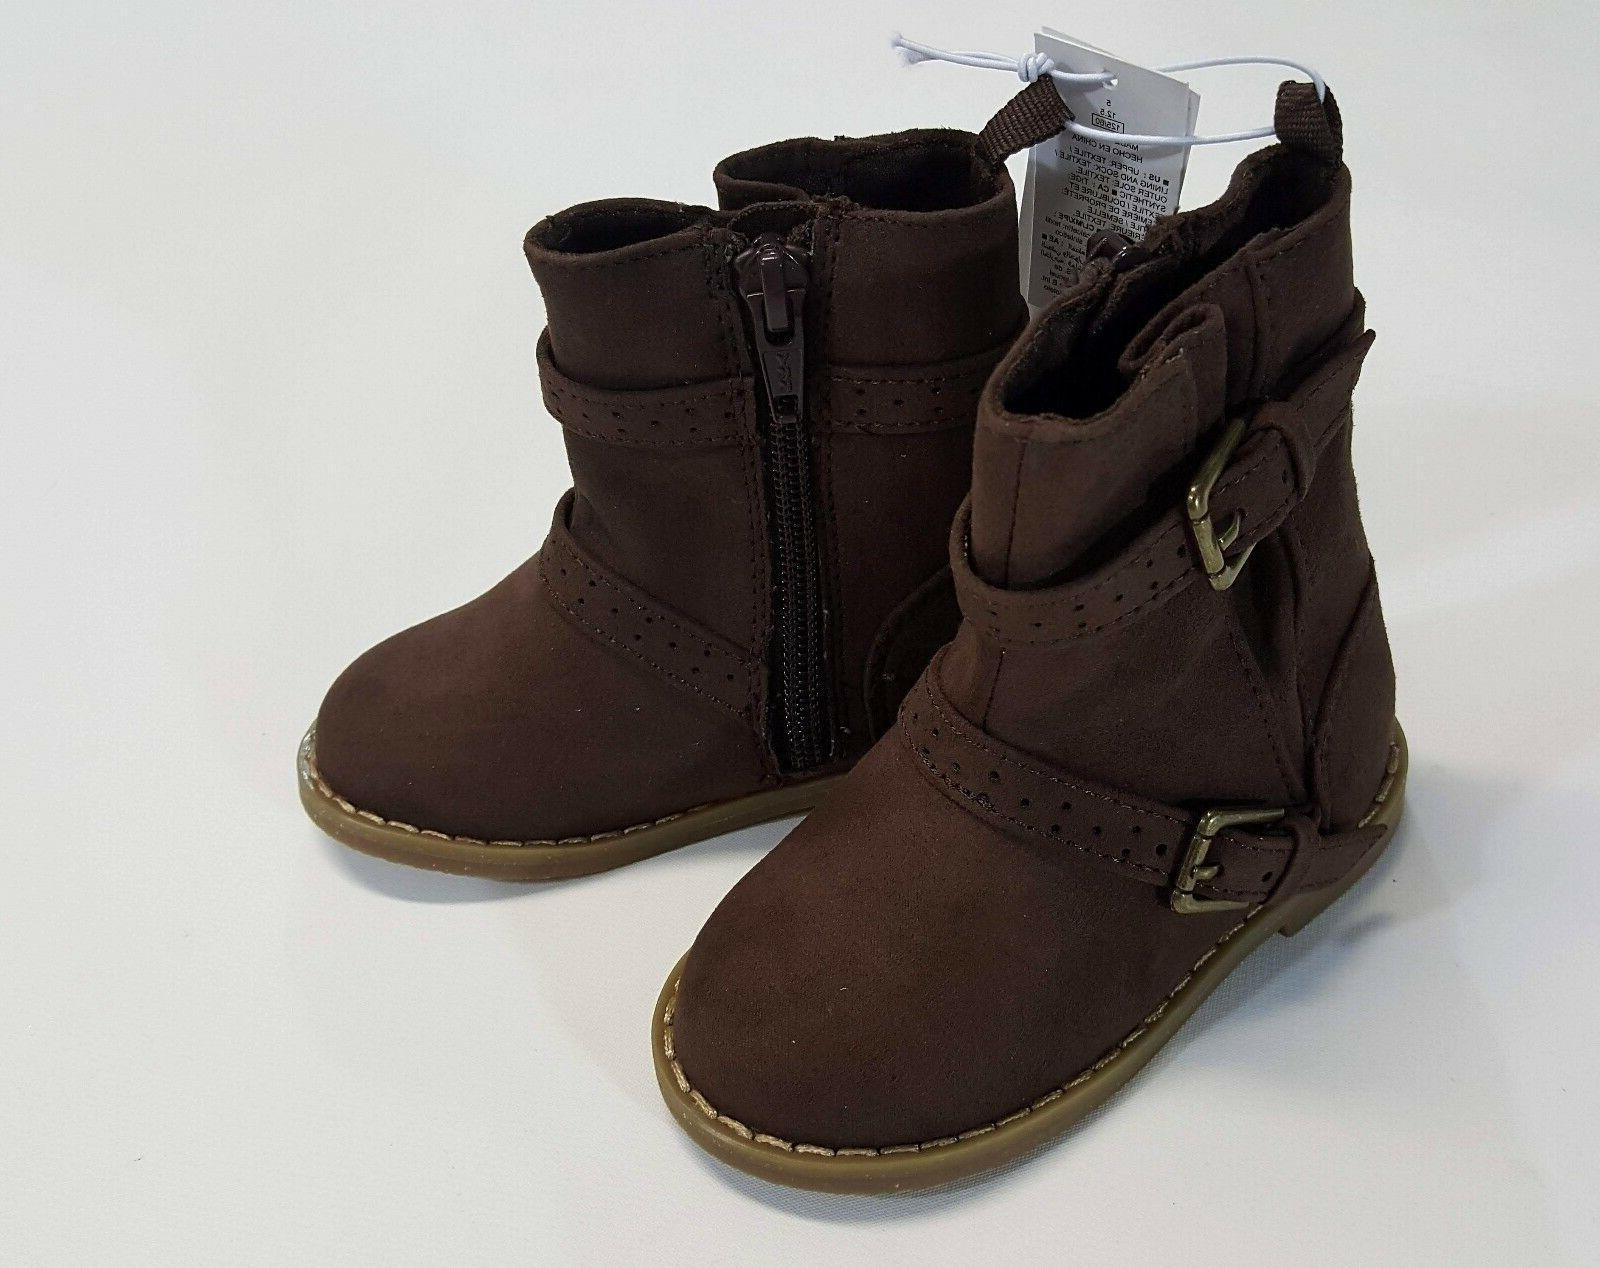 NWT Old Navy Toddler Girls Size 5 6 7 8 9 or 10 Brown Buckle